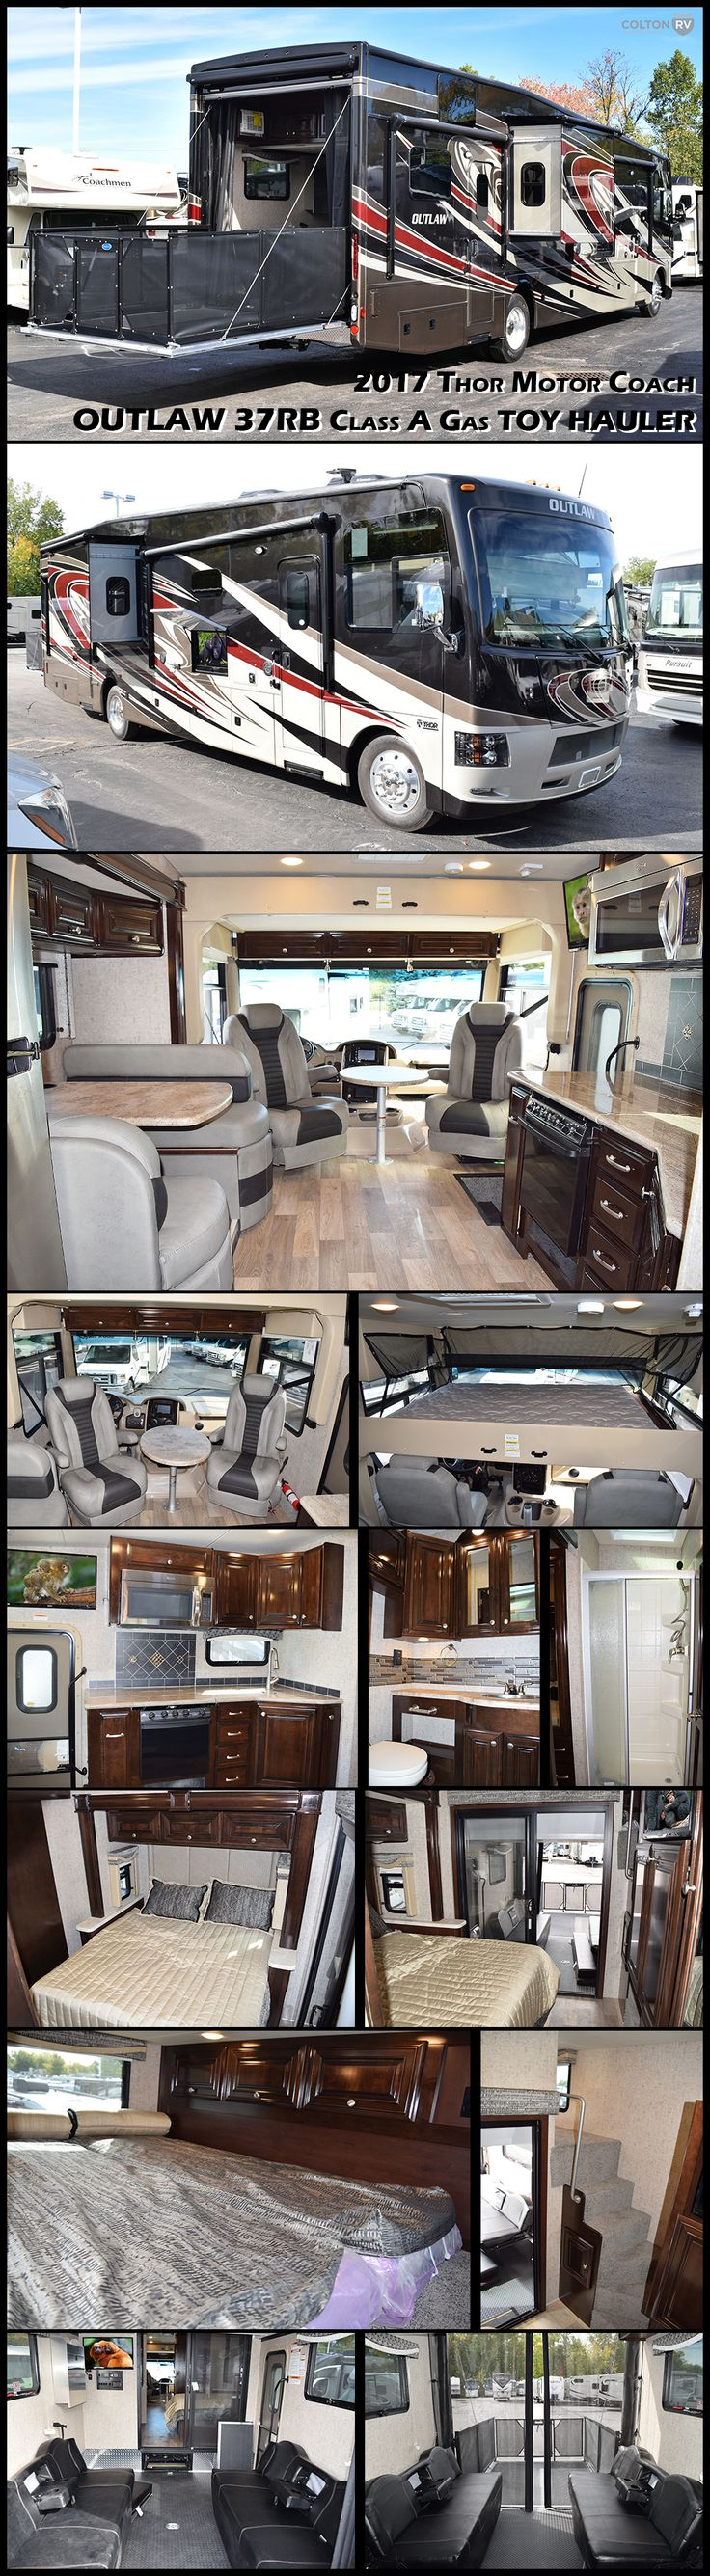 """This 2017 OUTLAW 37RB Class a Gas TOY HAULER by Thor Motor Coach has it all!! You can enjoy your outdoor toys with all the comforts of home! This motorhome features a 96"""" x 122"""" garage with an overhea"""